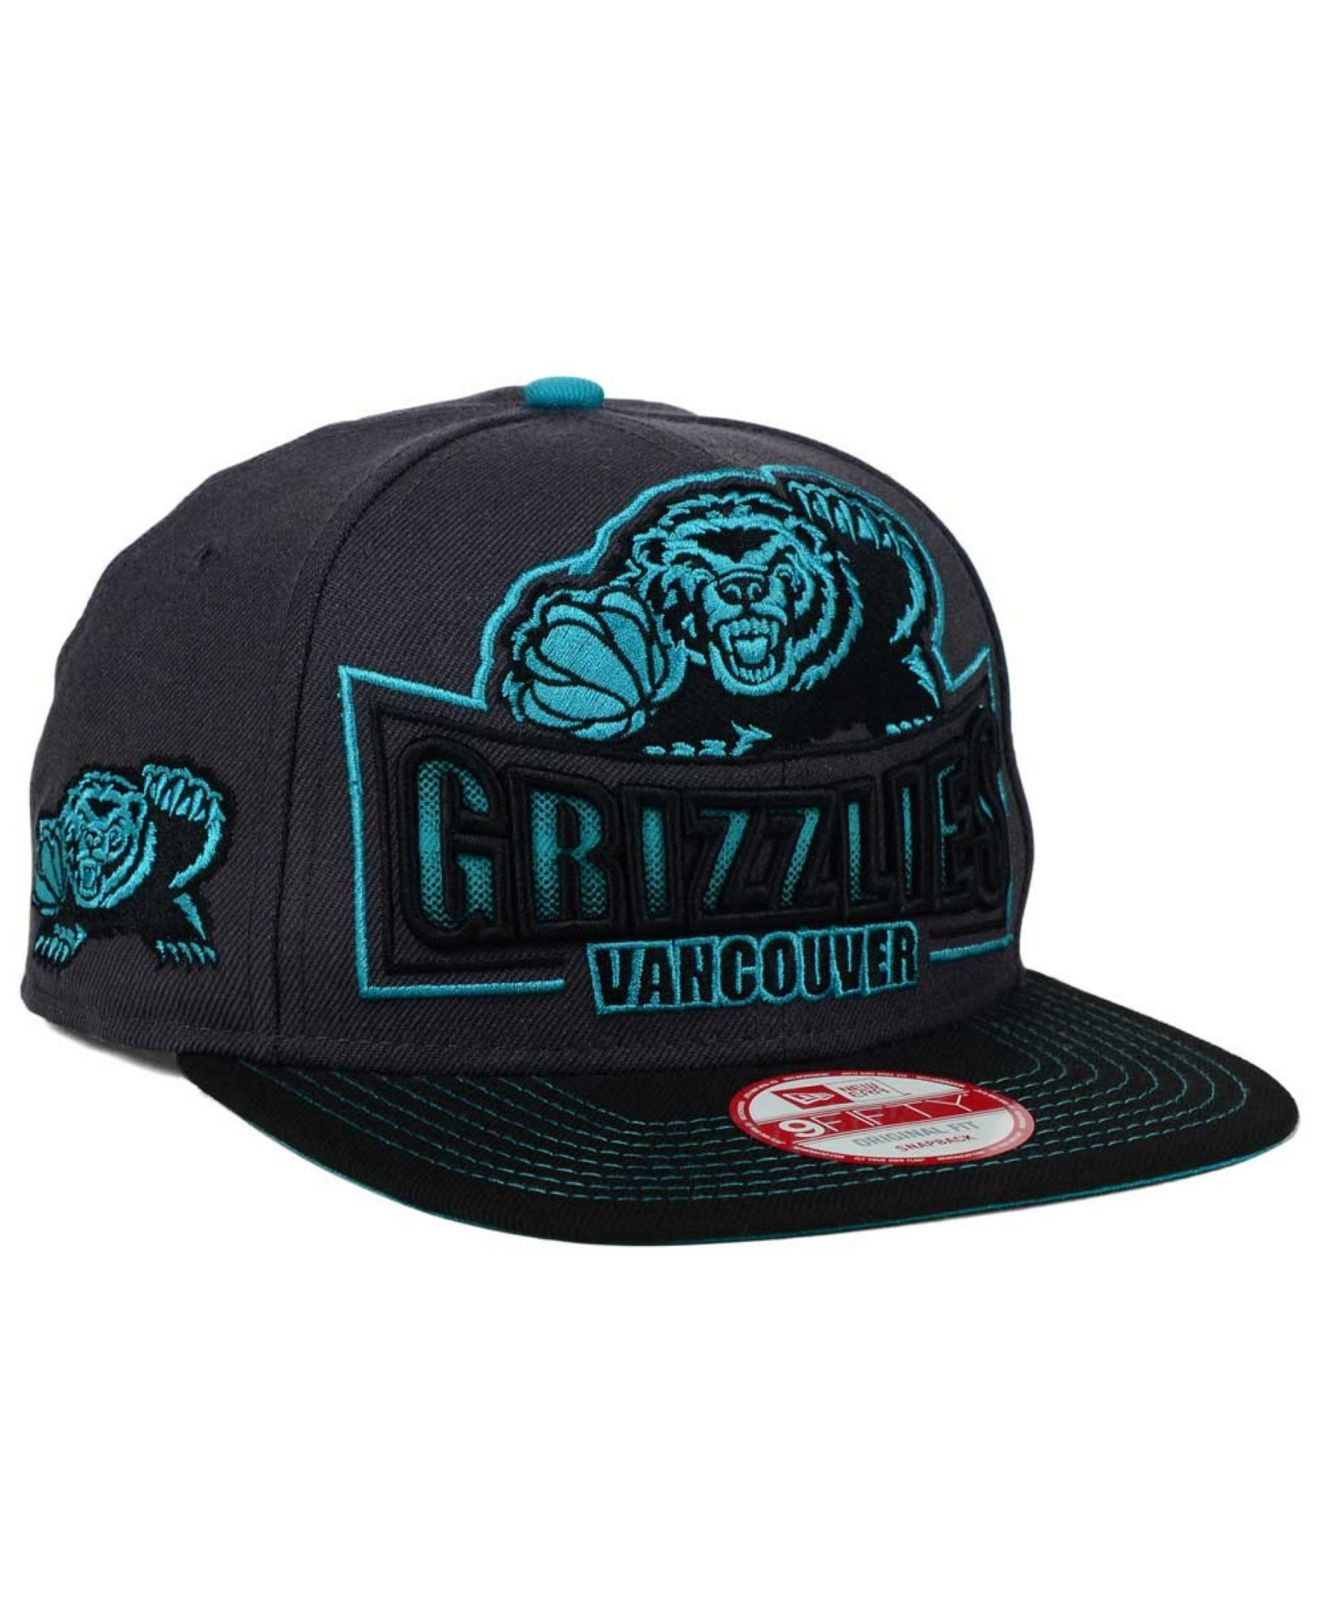 official store new images of autumn shoes switzerland memphis grizzlies new era nba retro triangle 9fifty ...